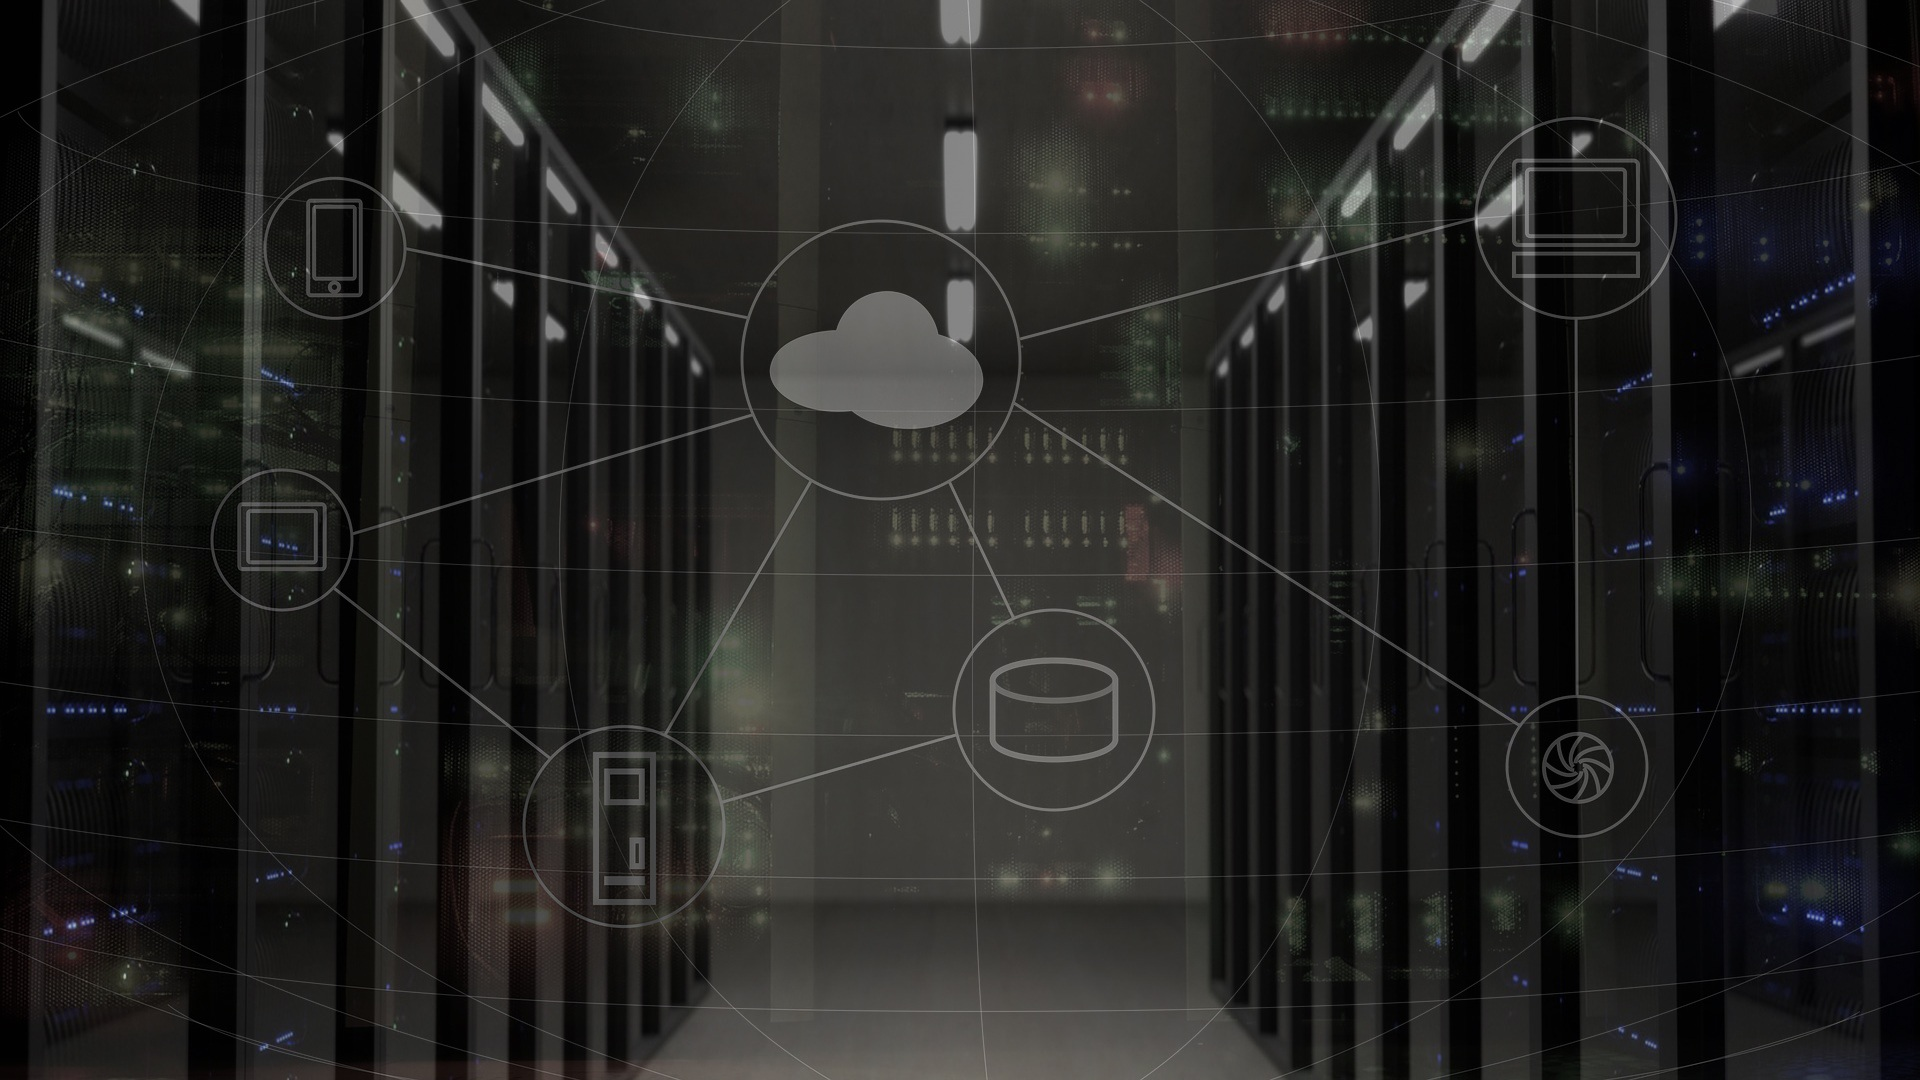 Read more about the article Cloud Computing vs. On-Premise Systems: Which is Better?